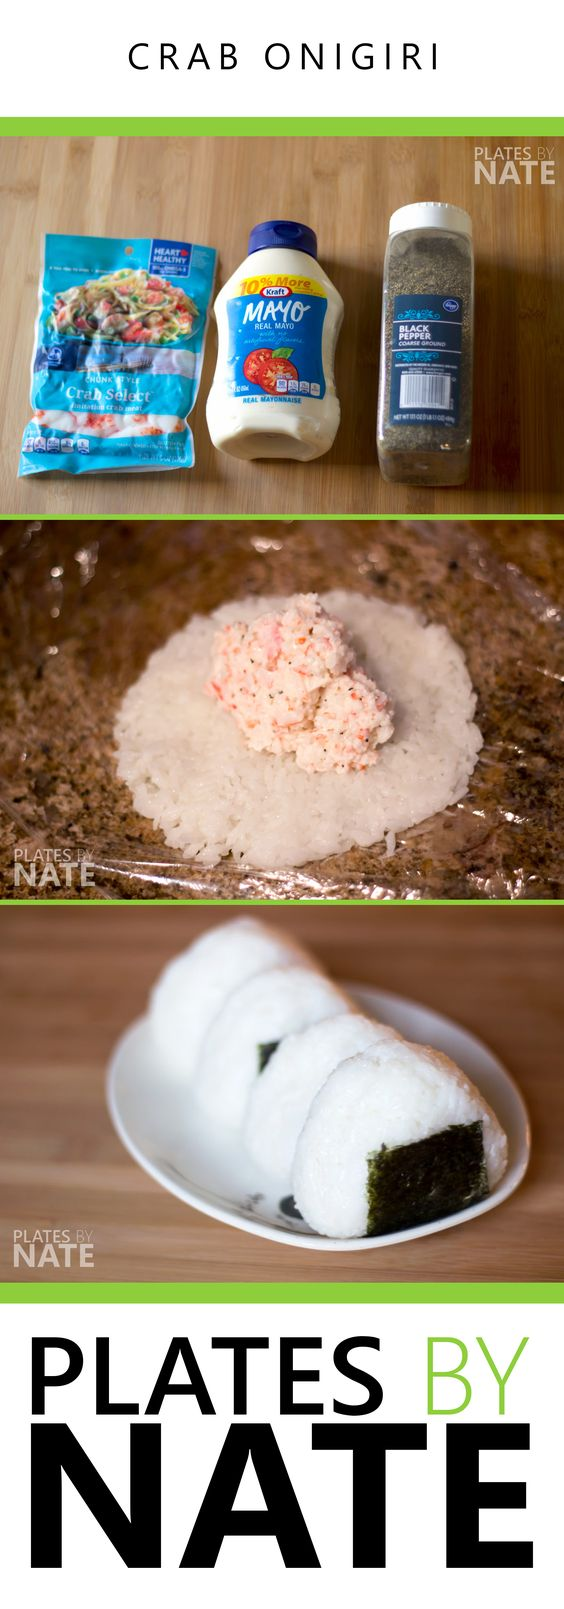 PlatesByNate.com - This crab onigiri only has 6 ingredients including salt and pepper. Super simple, and a hearty weekly favorite in our home.